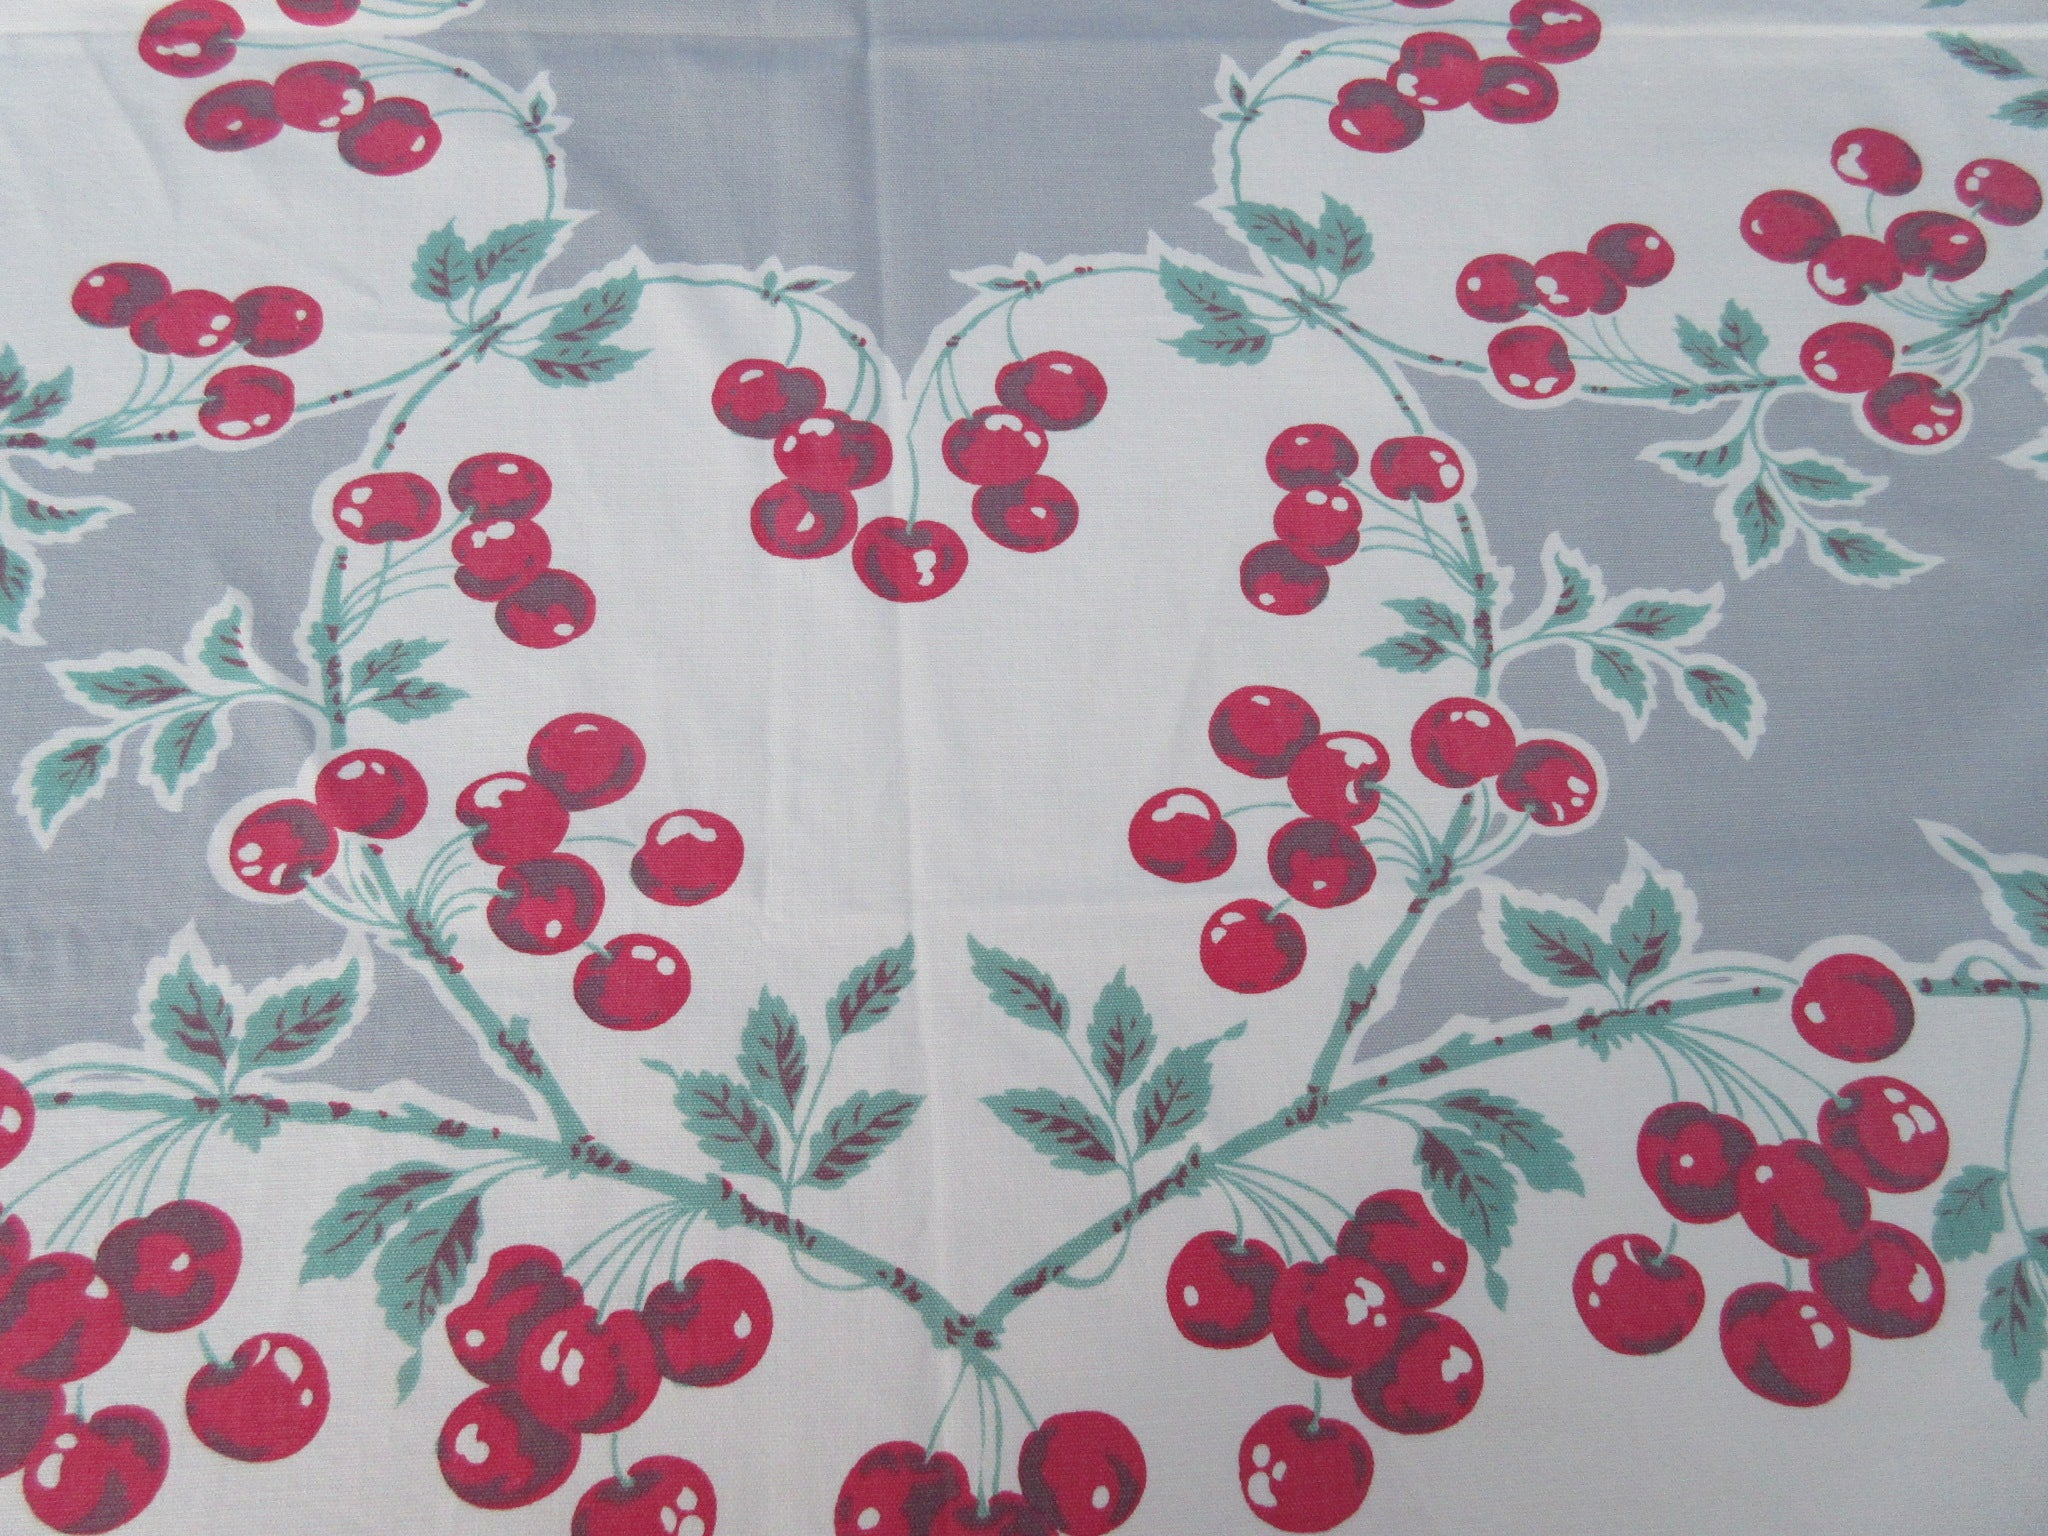 Imperfect Red Green Cherry Hearts on Gray Fruit Vintage Printed Tablecloth (53 X 45)